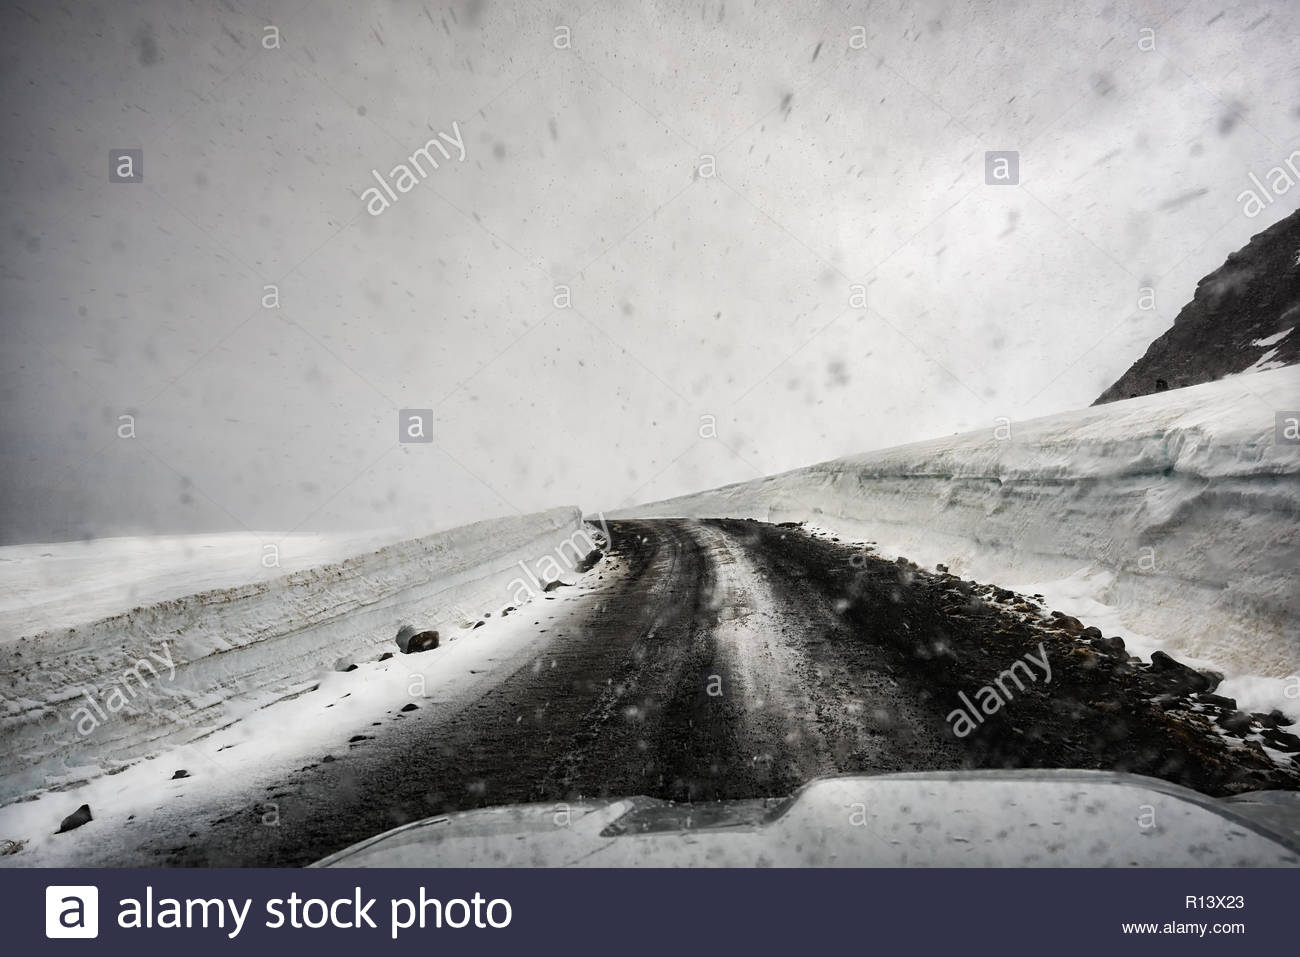 Snowy weather in winter - Stock Image